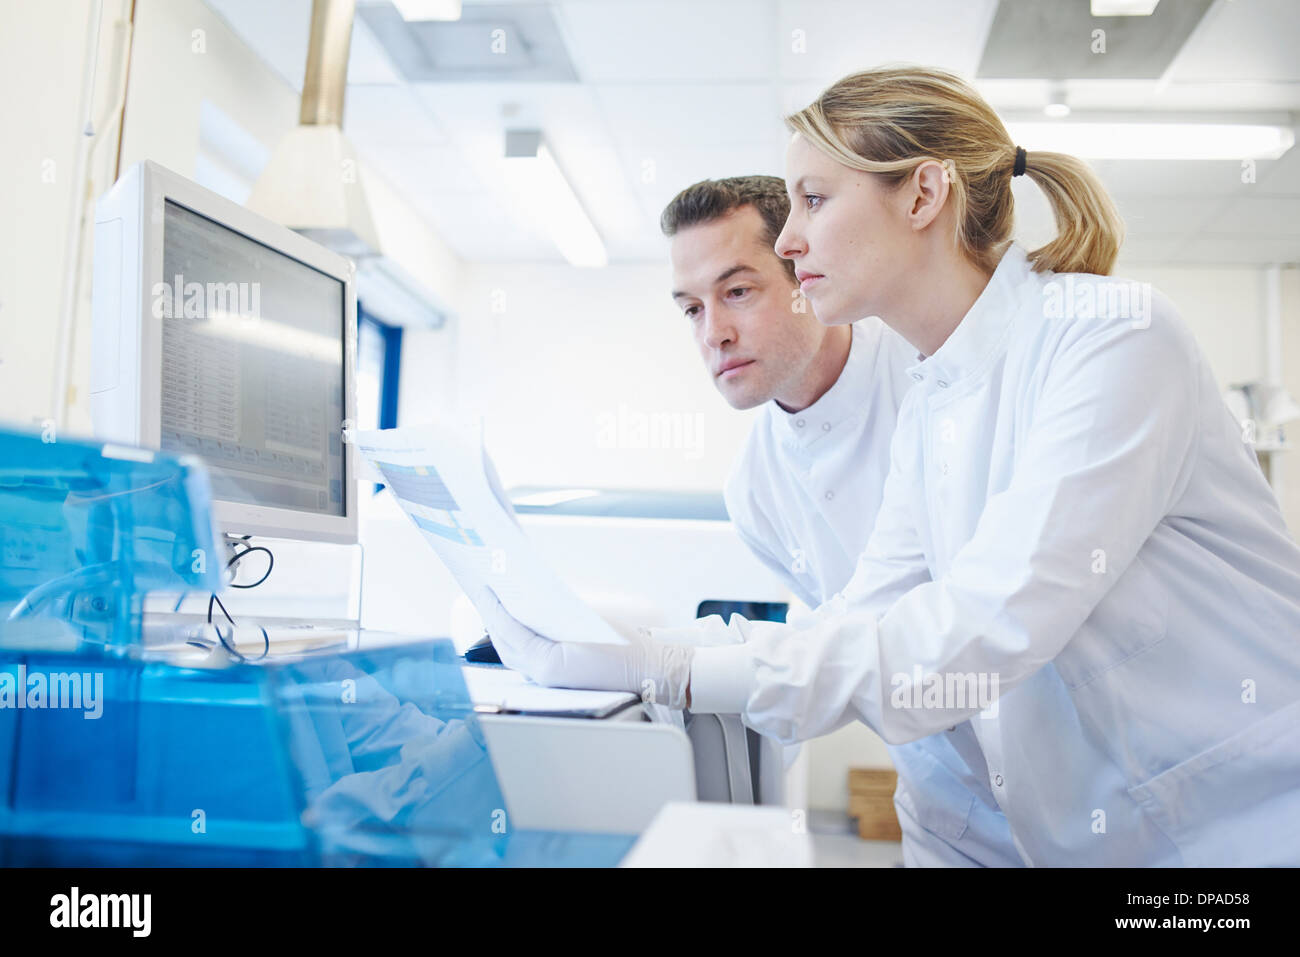 Researcher using computer - Stock Image